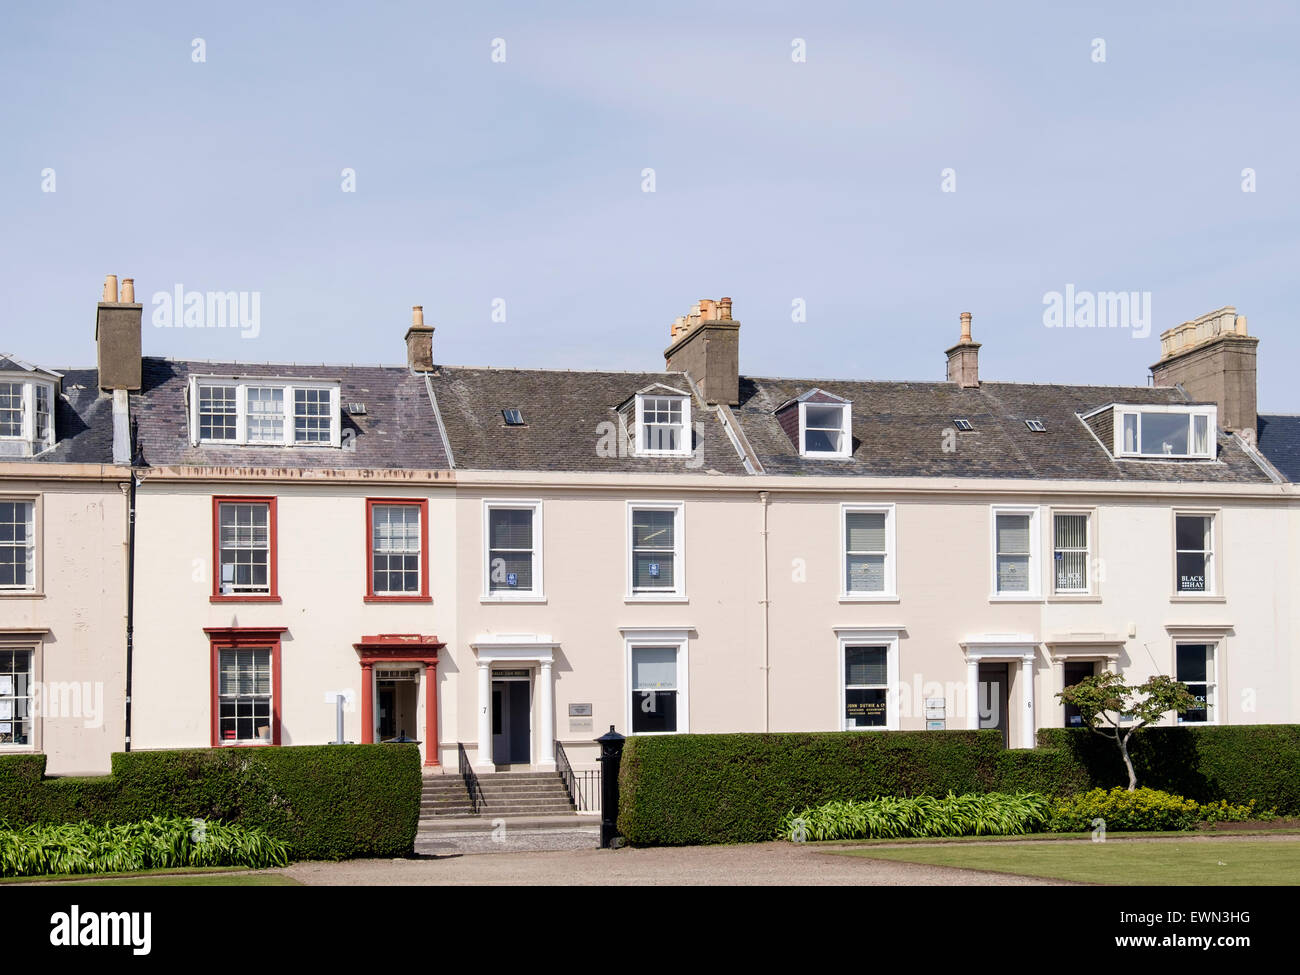 old terraced houses now used for businesses around wellington square rh alamy com house_owner ross house_owner wiki